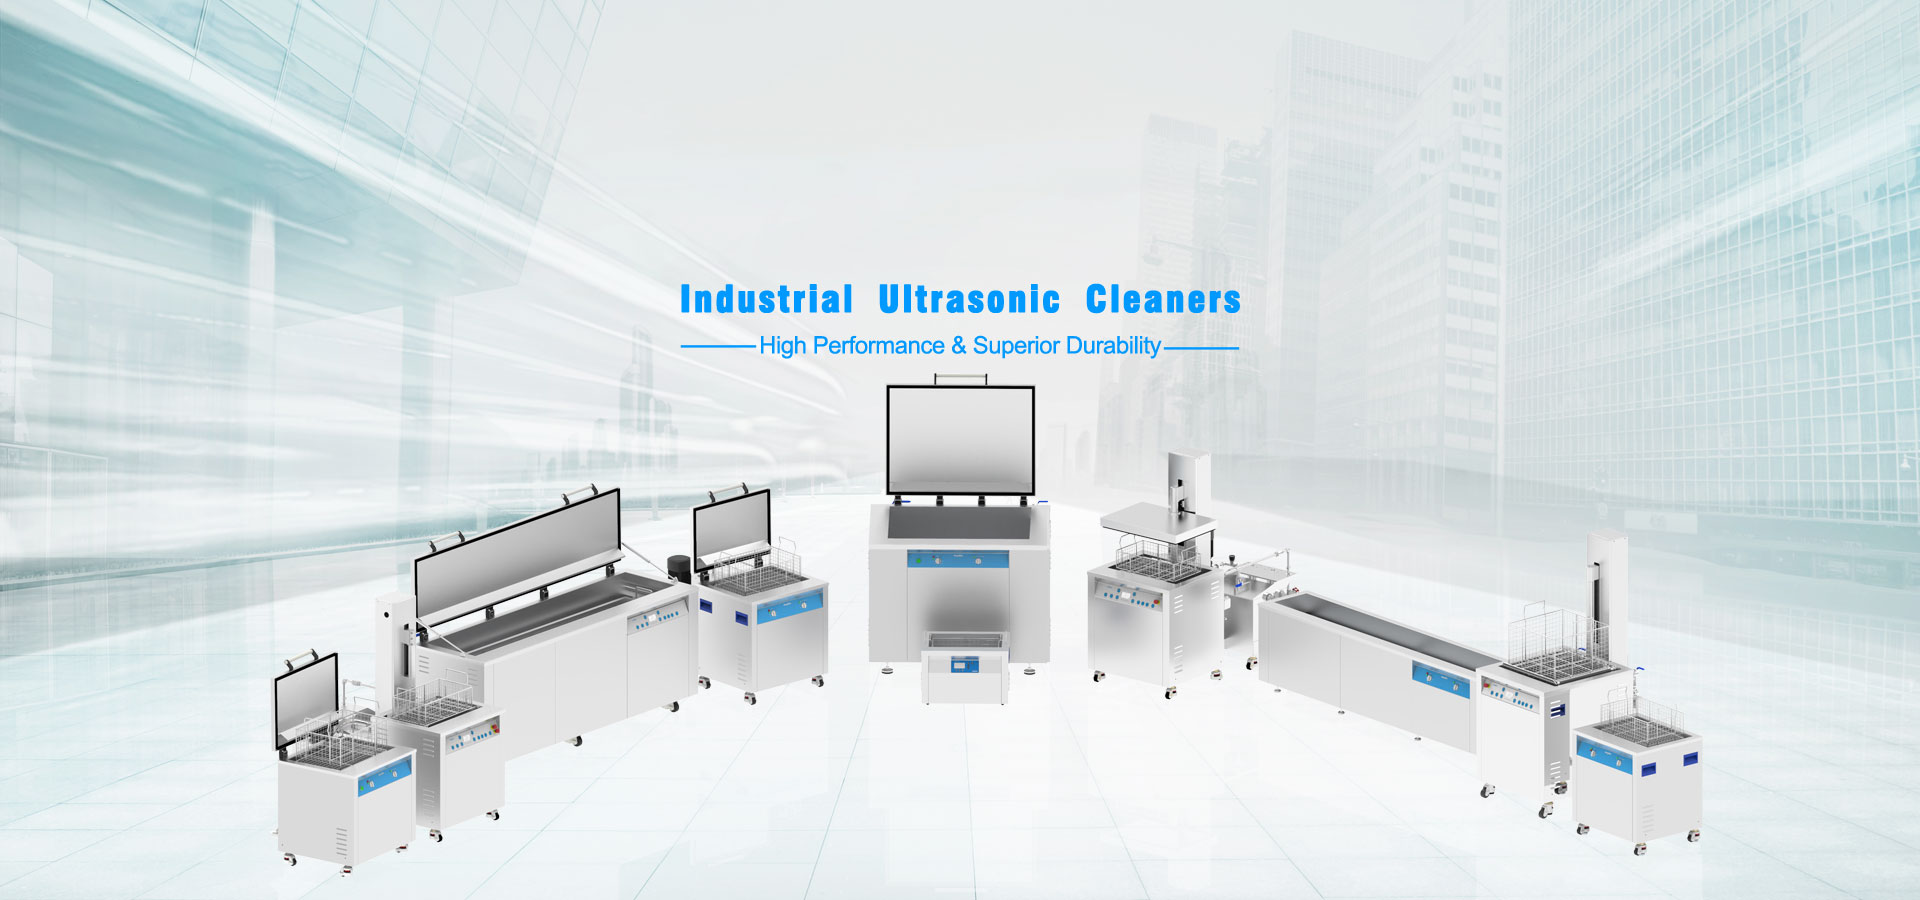 Ultrasonic Cleaner Manufacturers